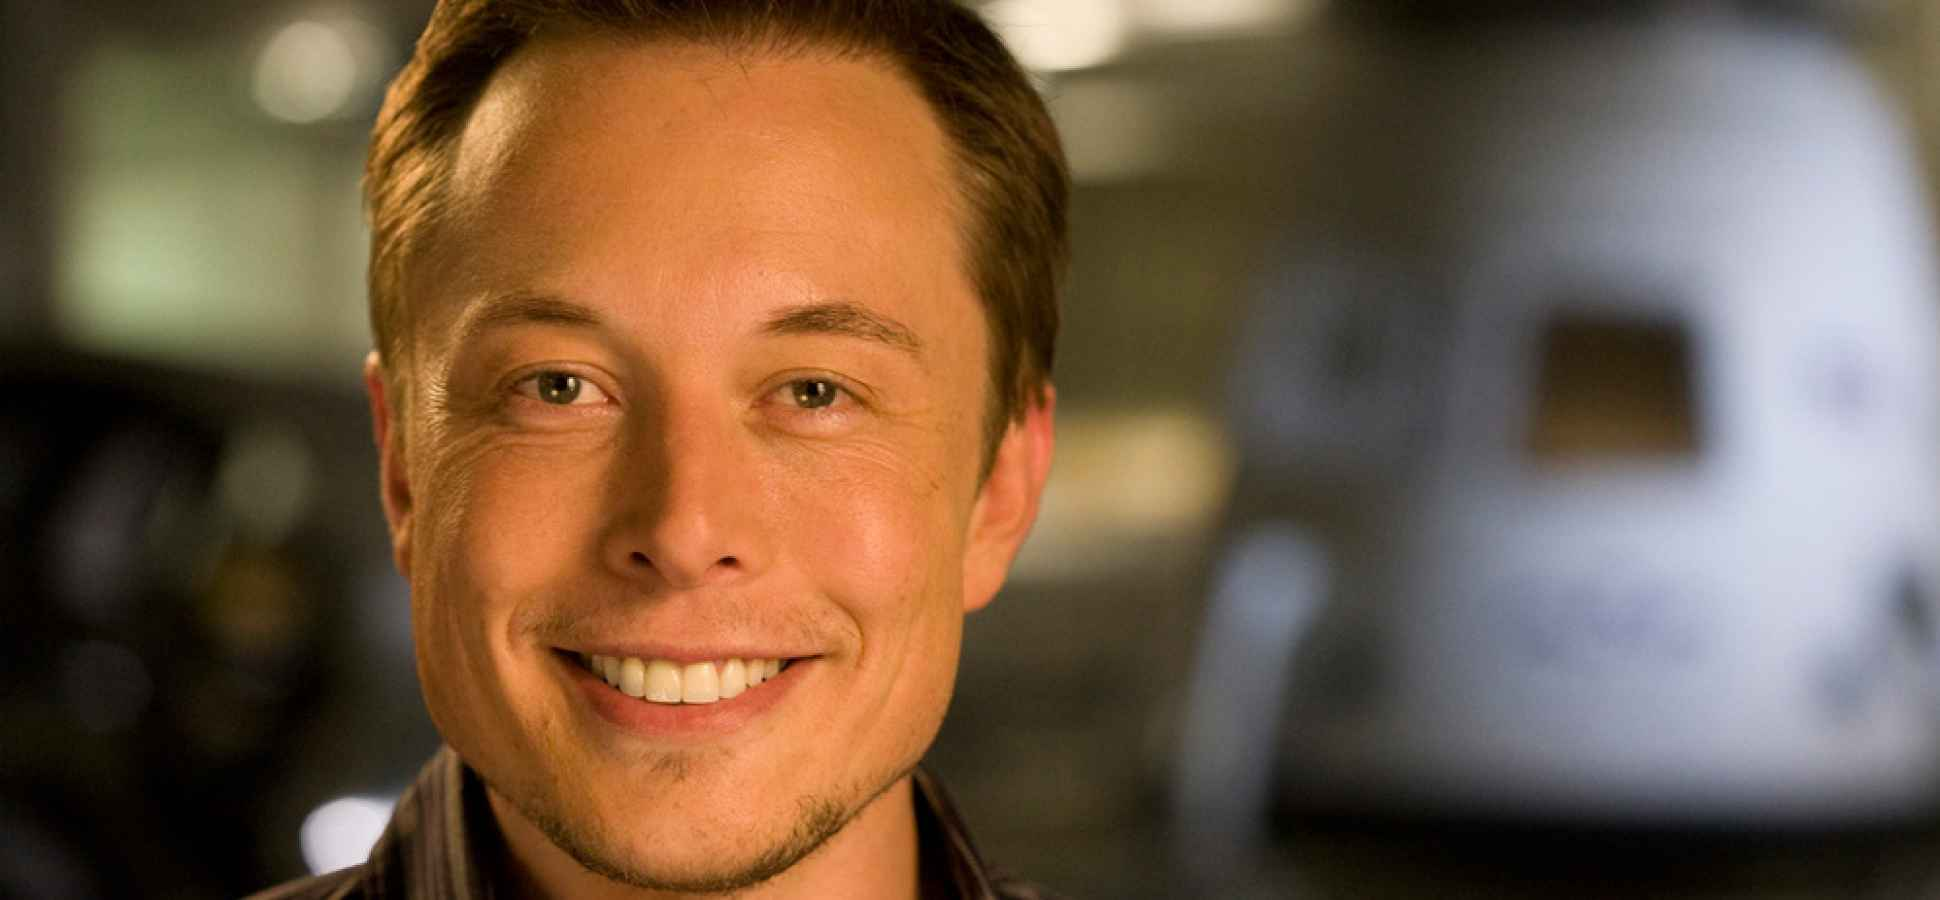 Elon Musk: The Future Is Fully Electric